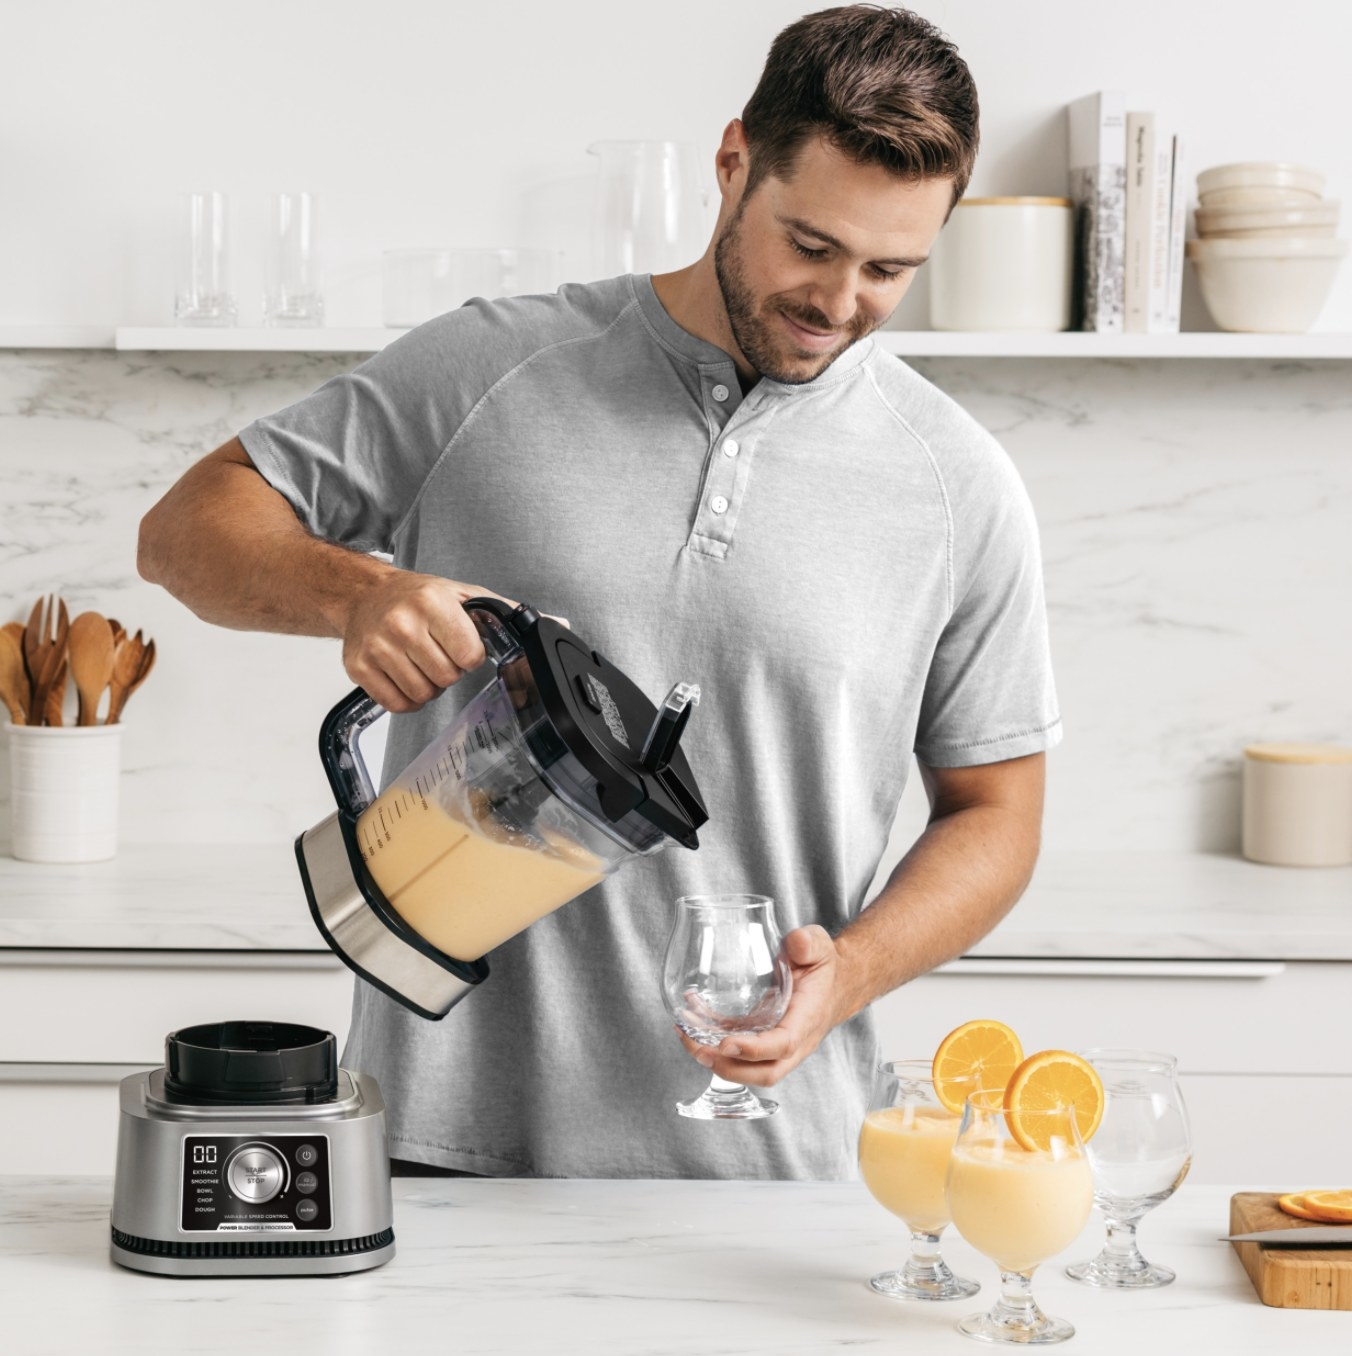 A person pouring a smoothie into a cup from a blender